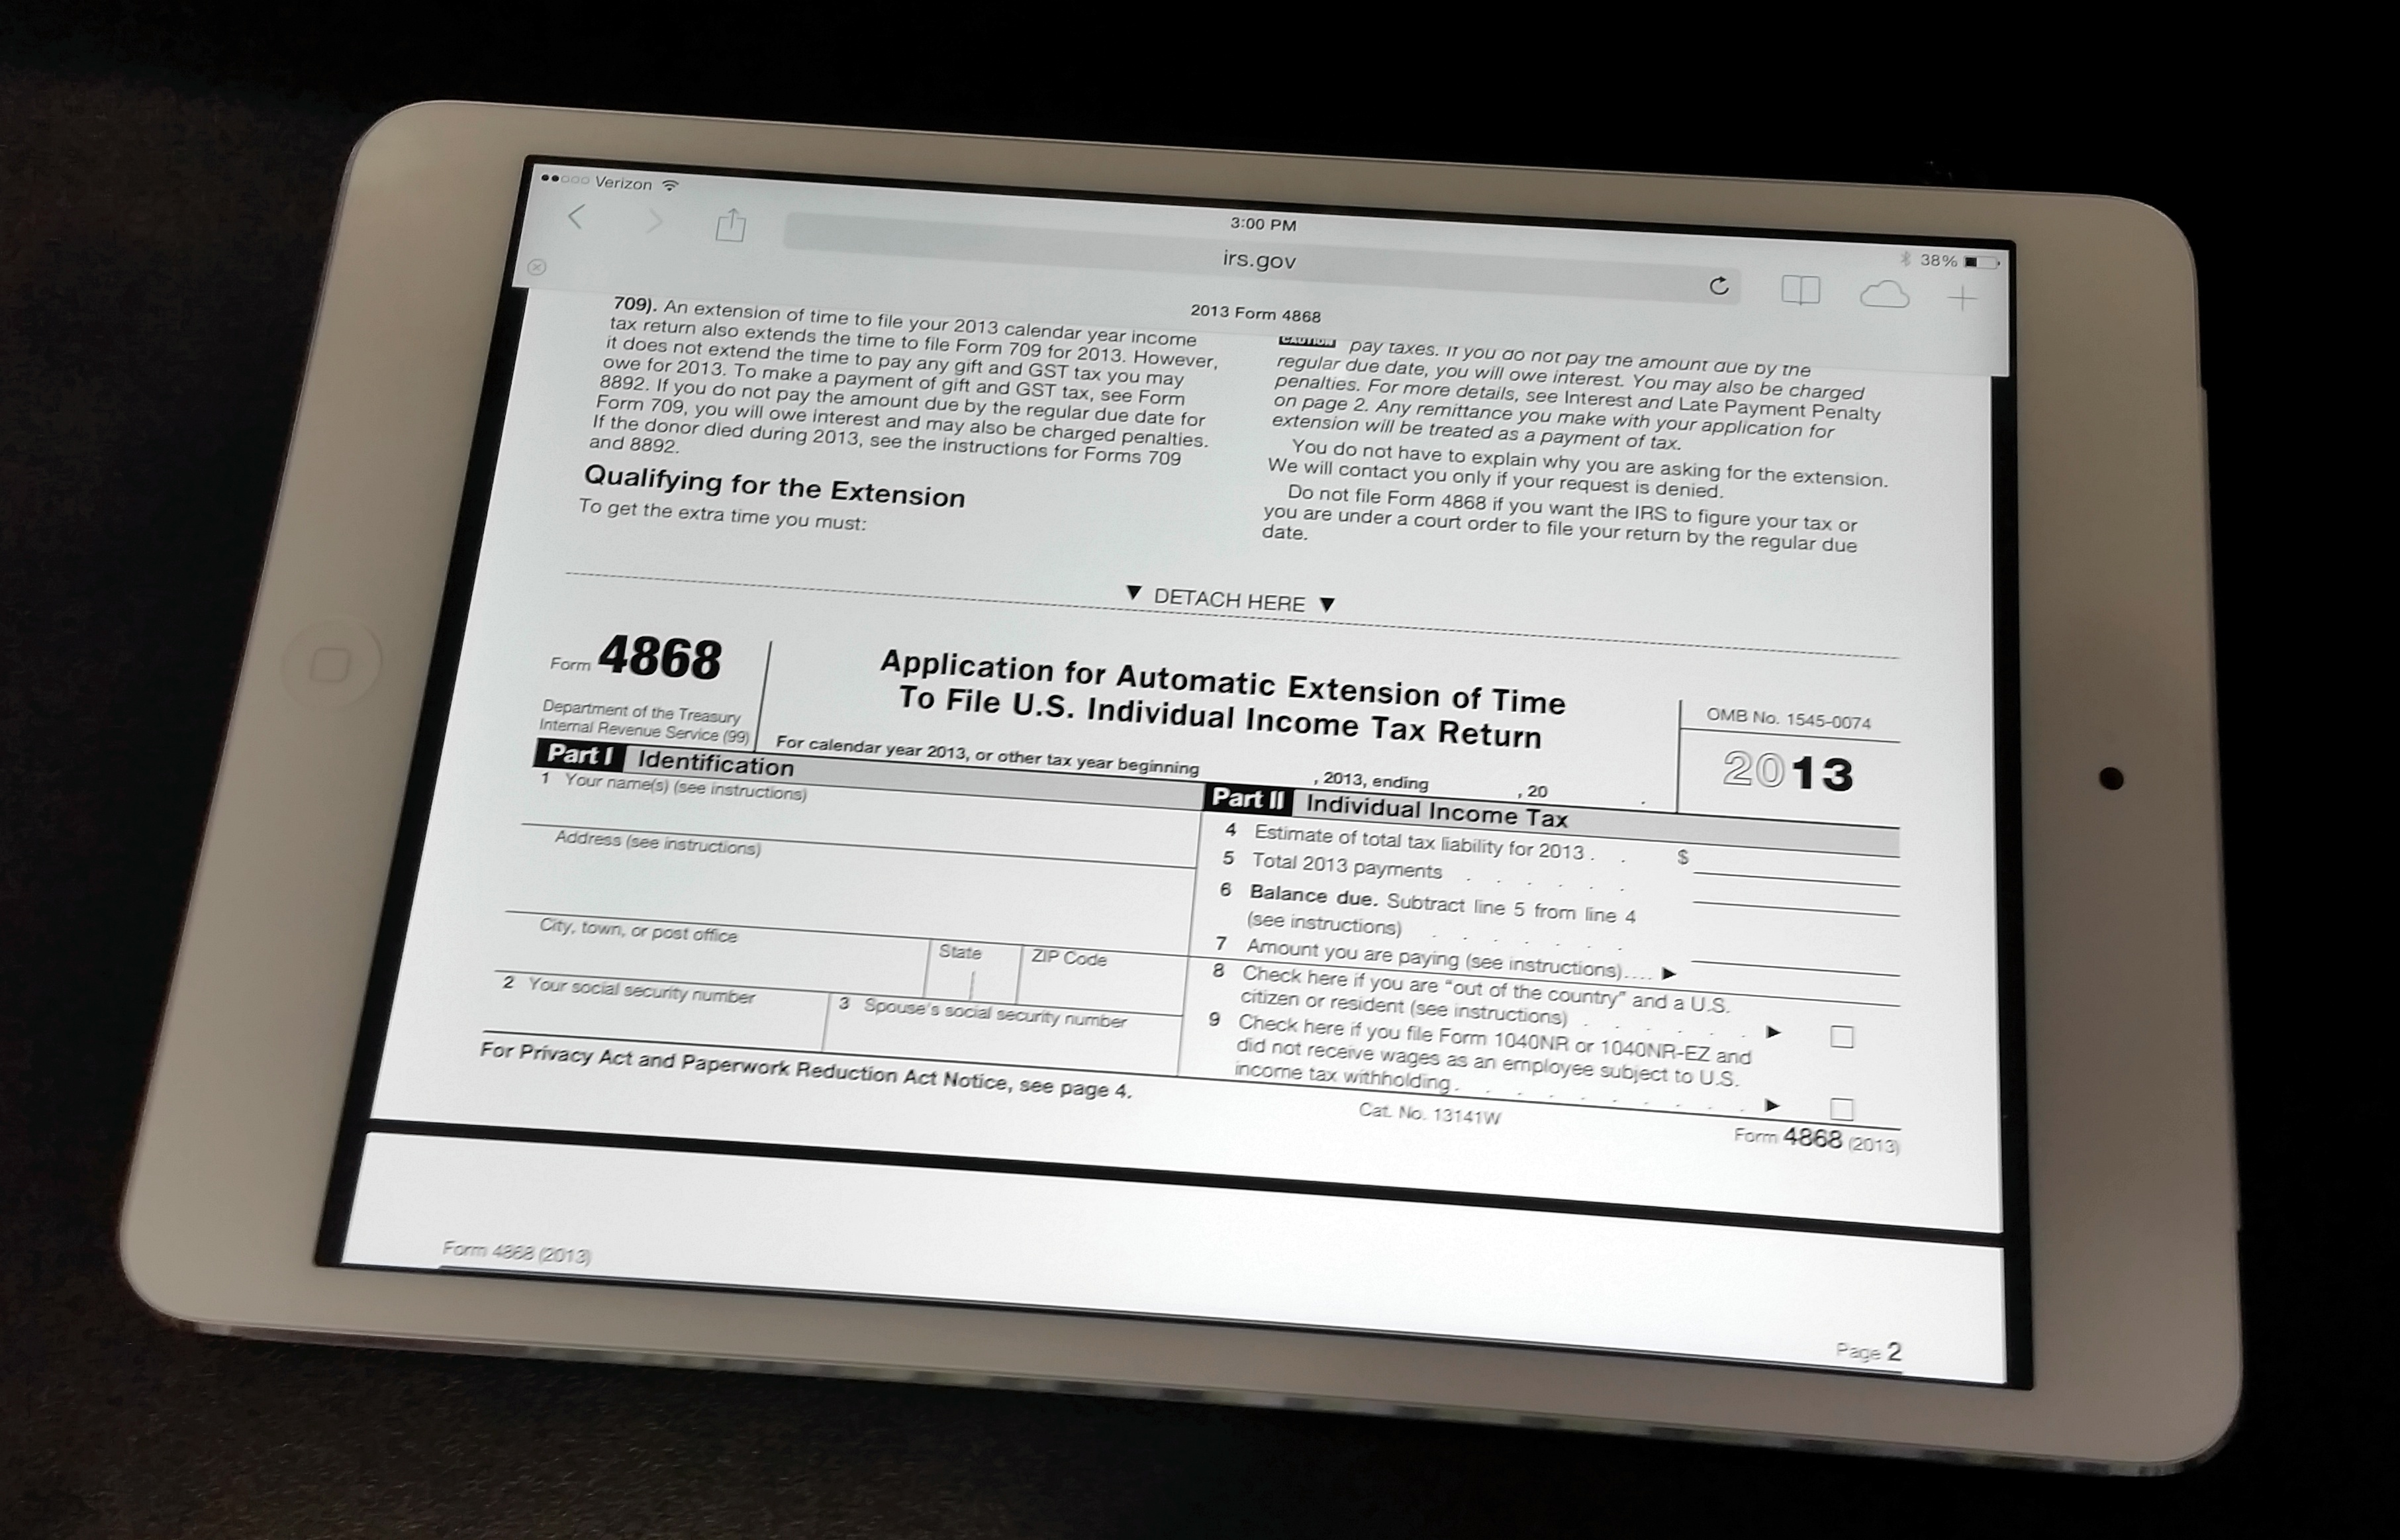 How to file a tax extension from iphone ipad or computer form 4868 file for a free 6 month tax extension using irs form 4868 on the ipad falaconquin